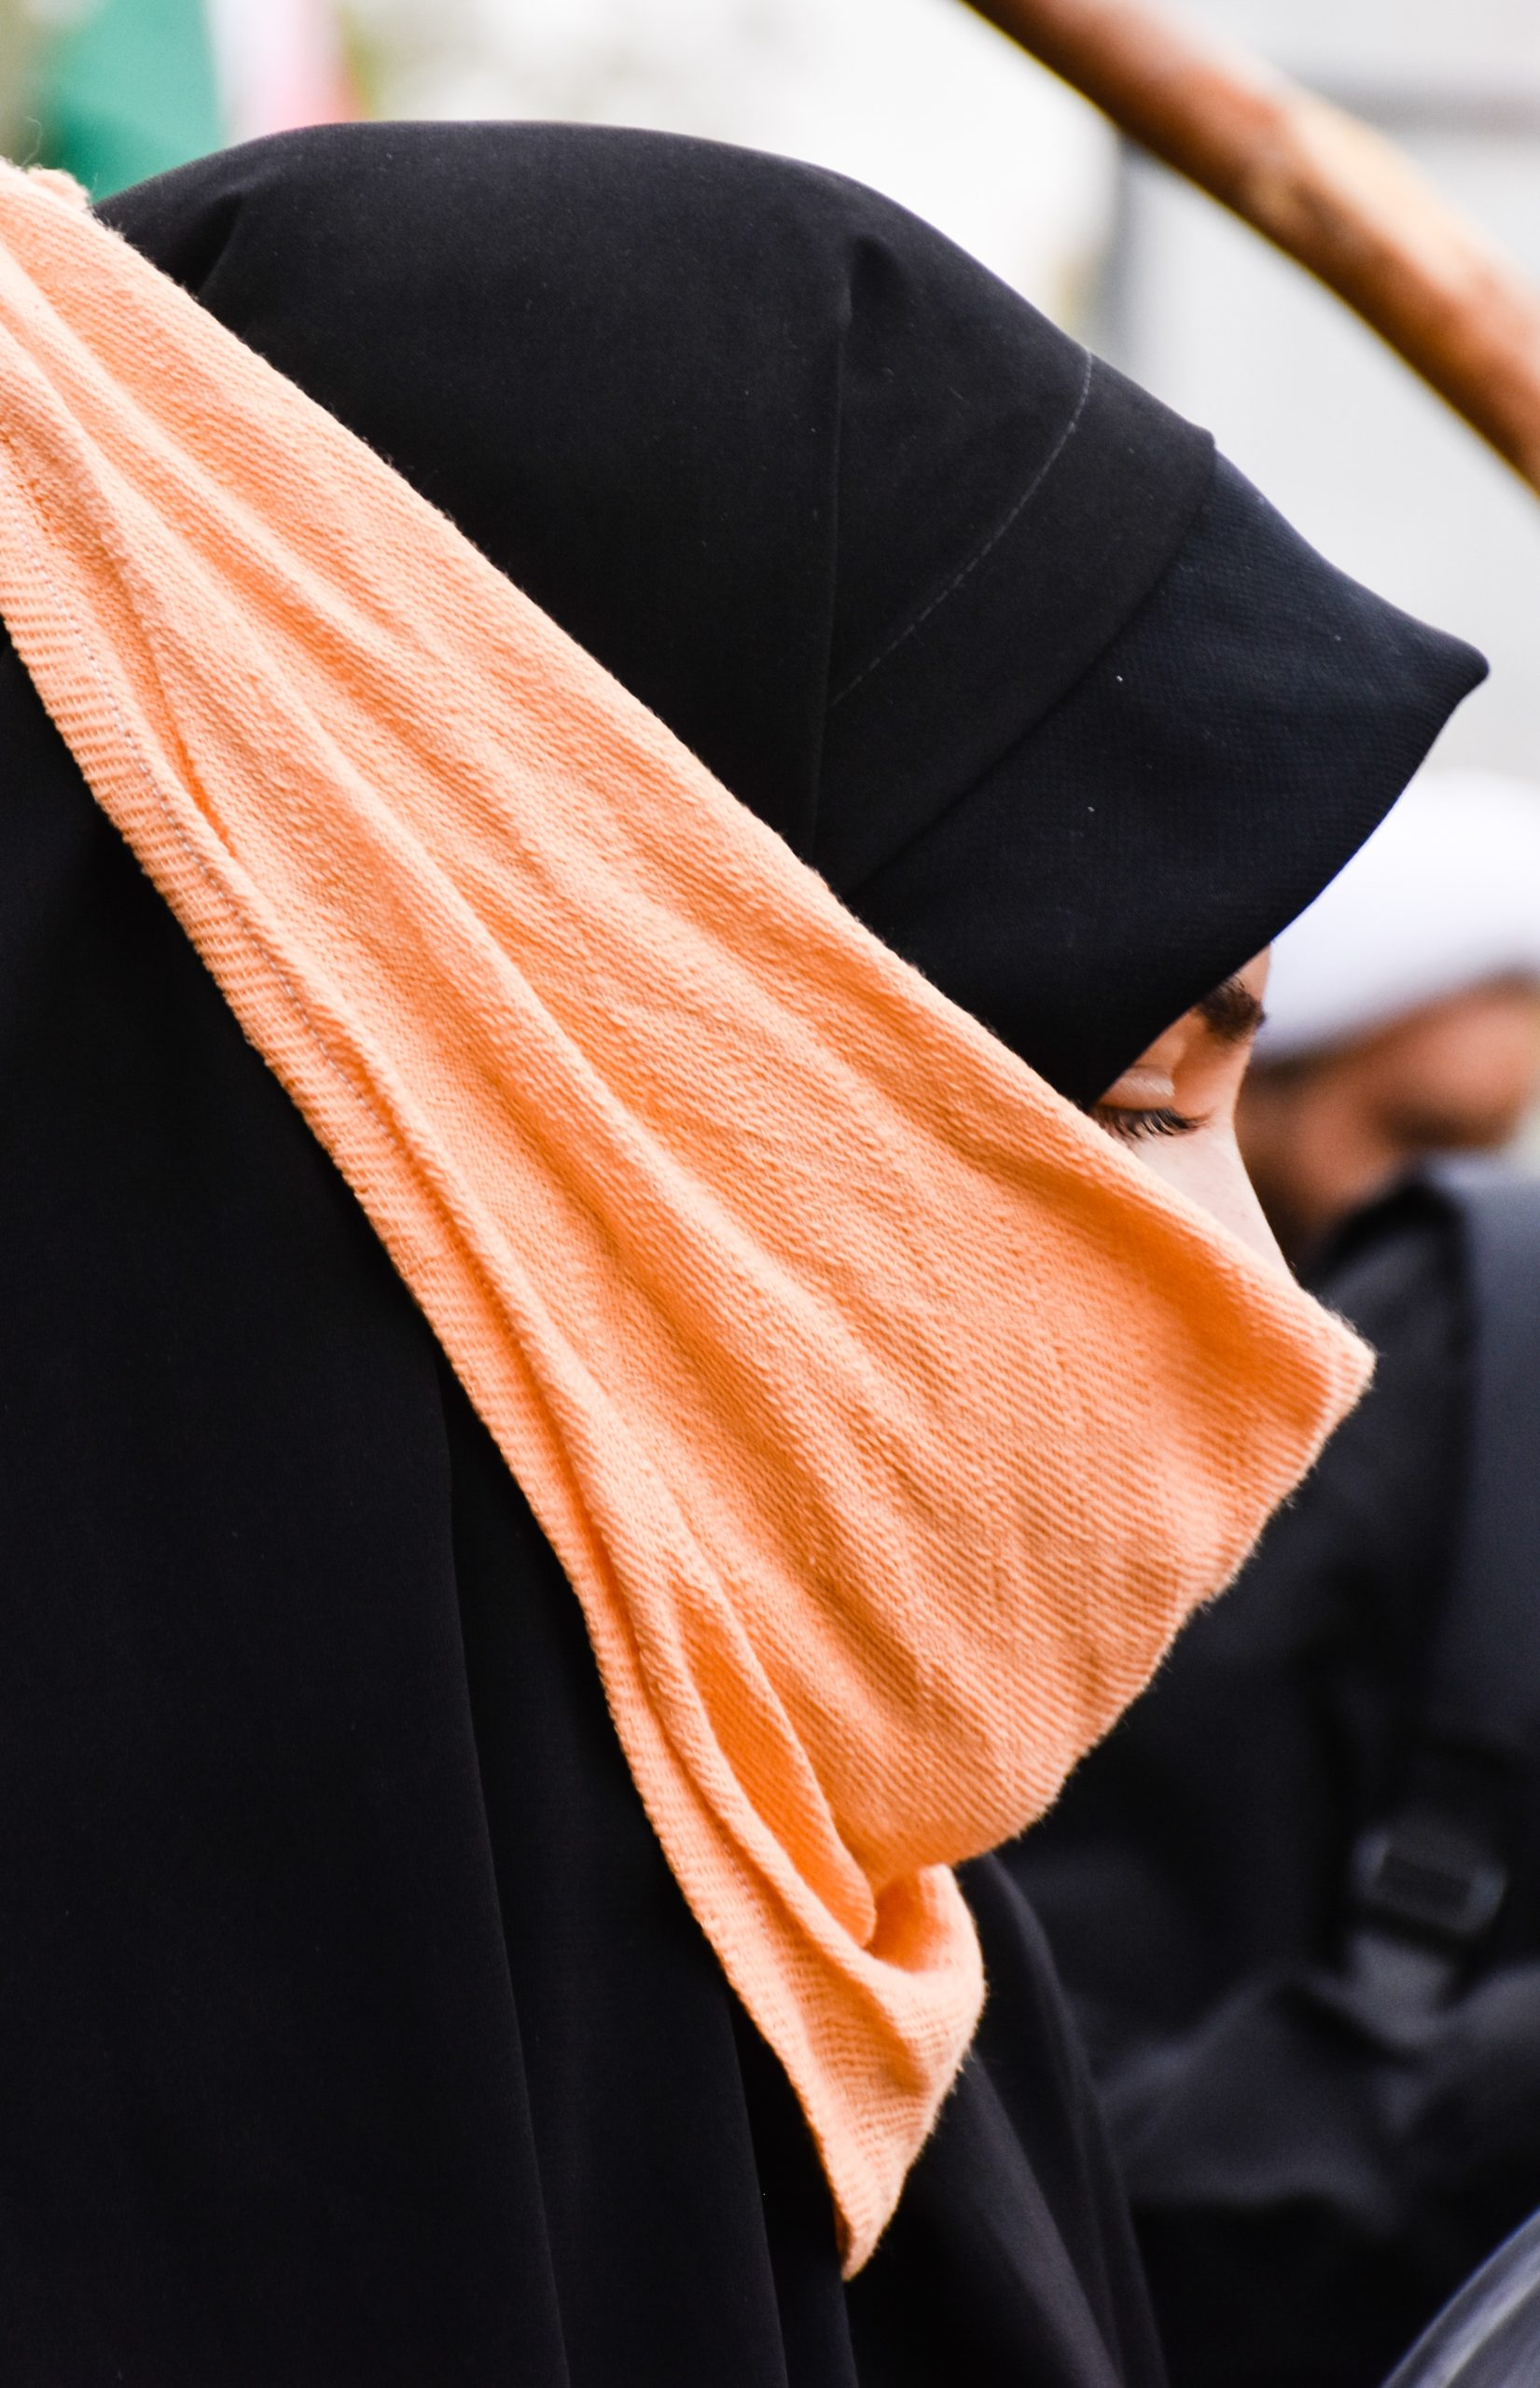 Gender-based Violence in Muslim Communities